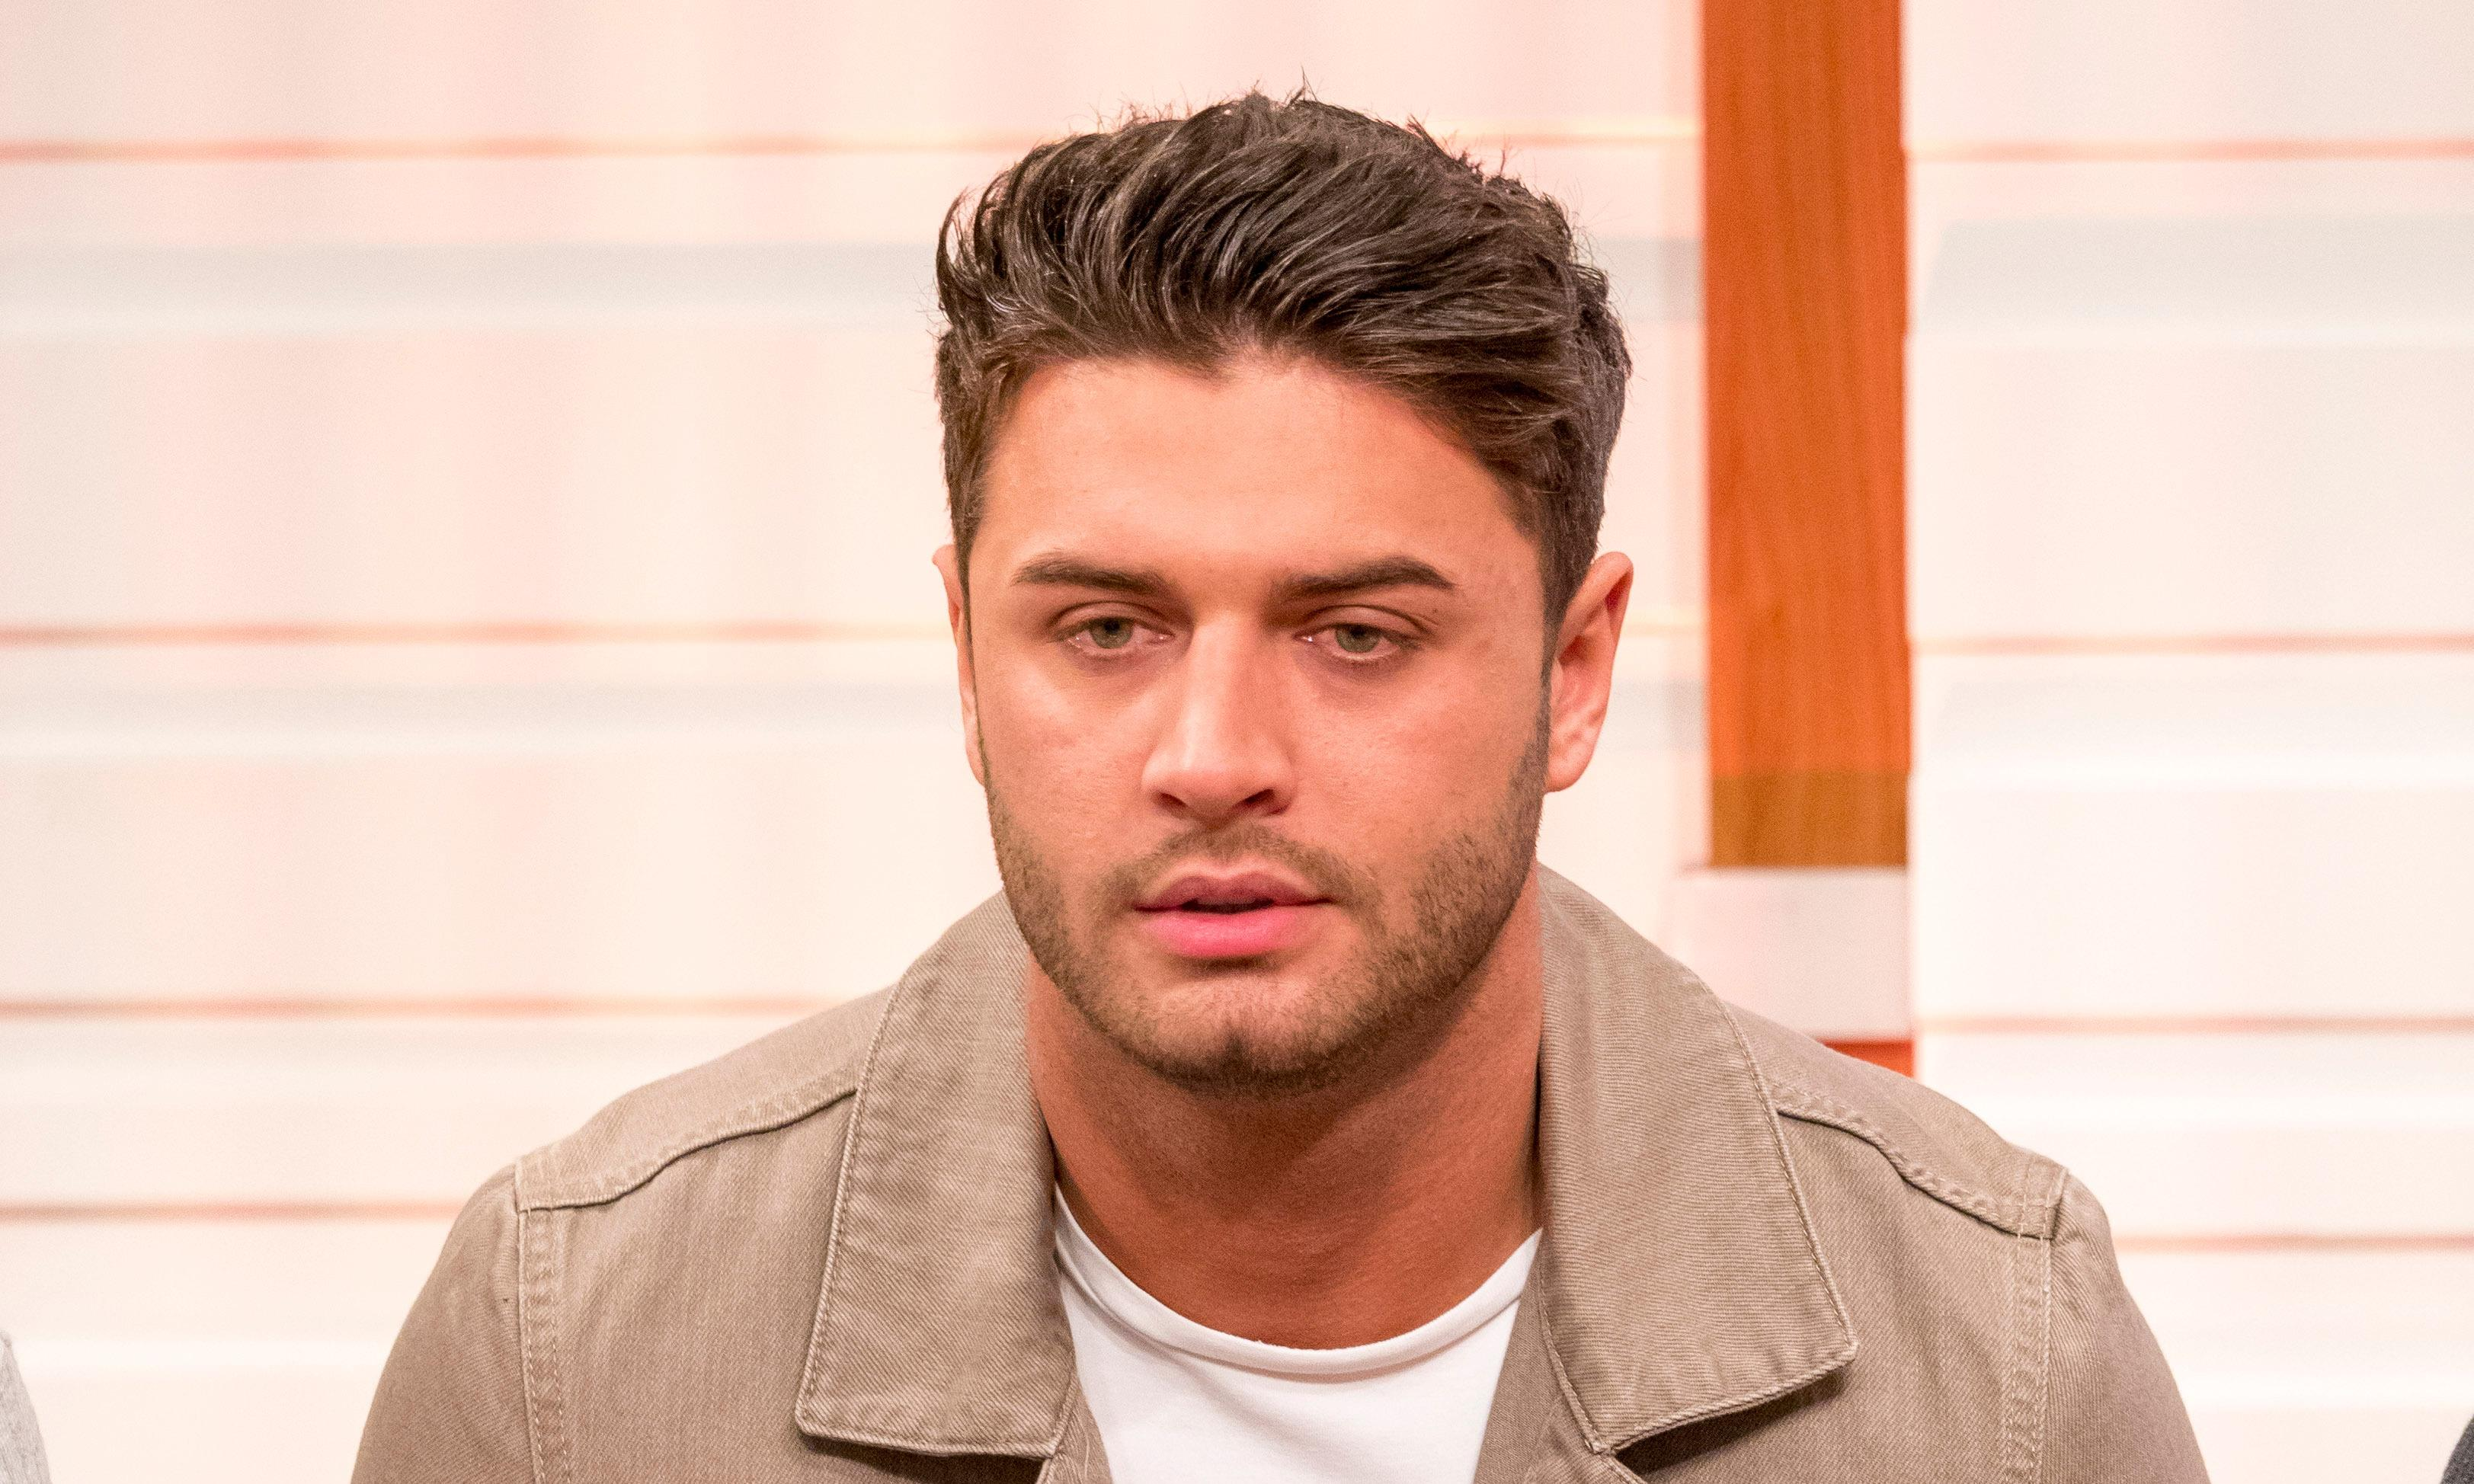 The death of my mate Mike Thalassitis shows that reality TV is costing lives